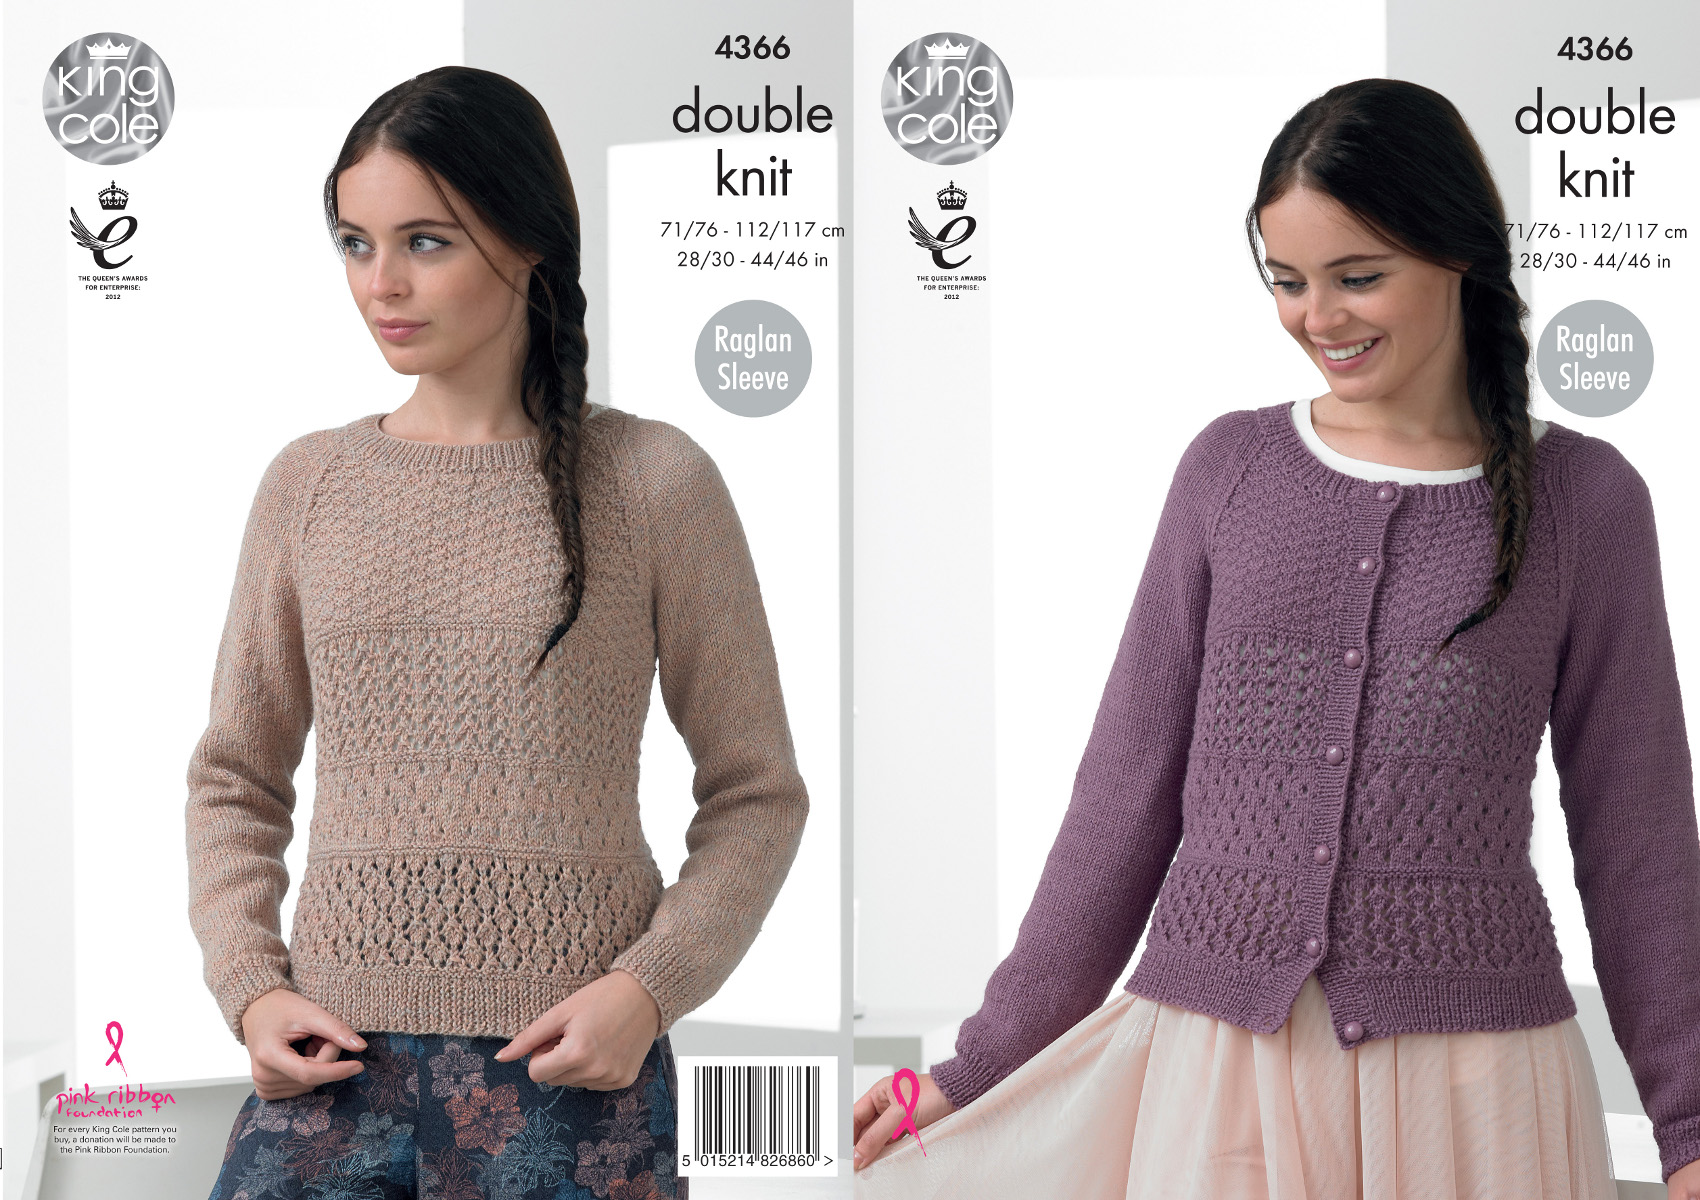 Raglan Sleeve Cardigan Jumper Sweater Ladies Knitting Pattern King ...